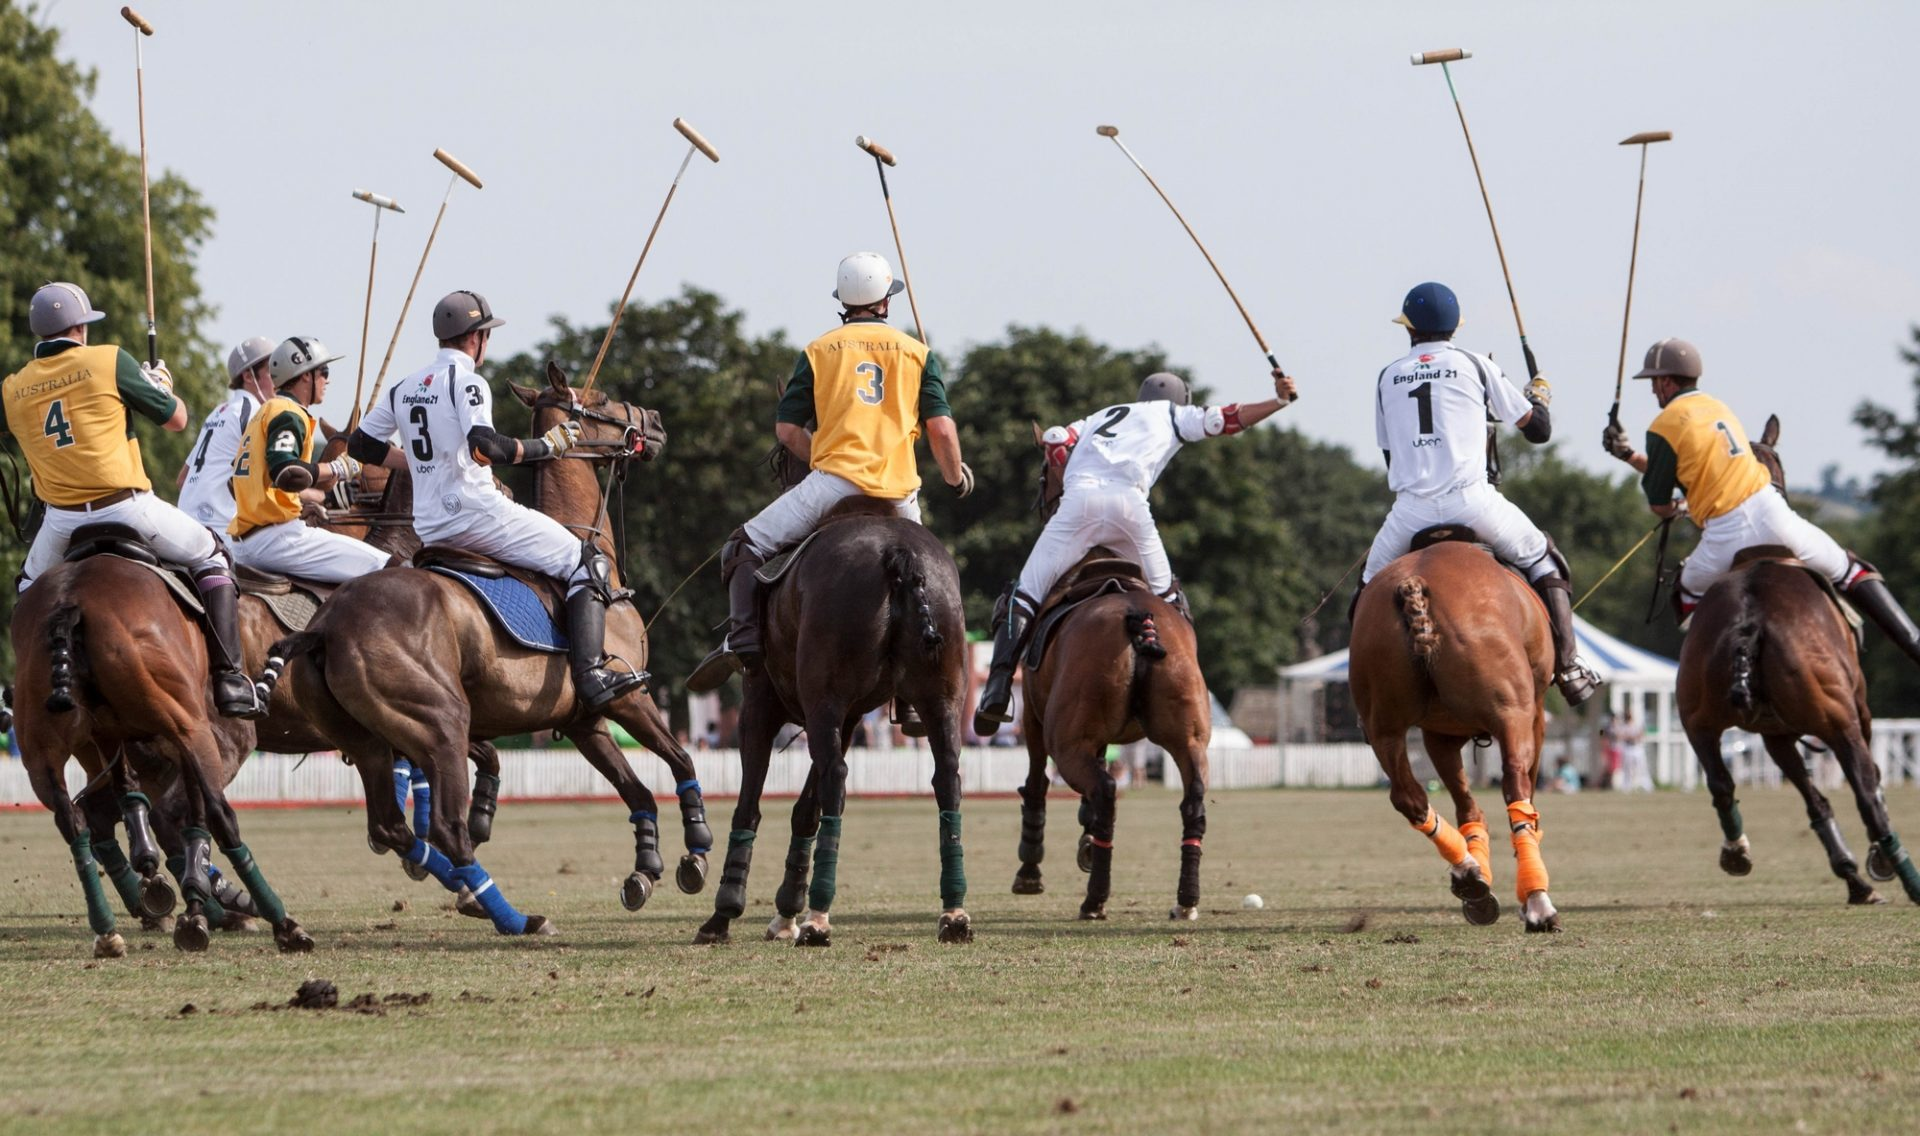 Polo Players Common Injuries